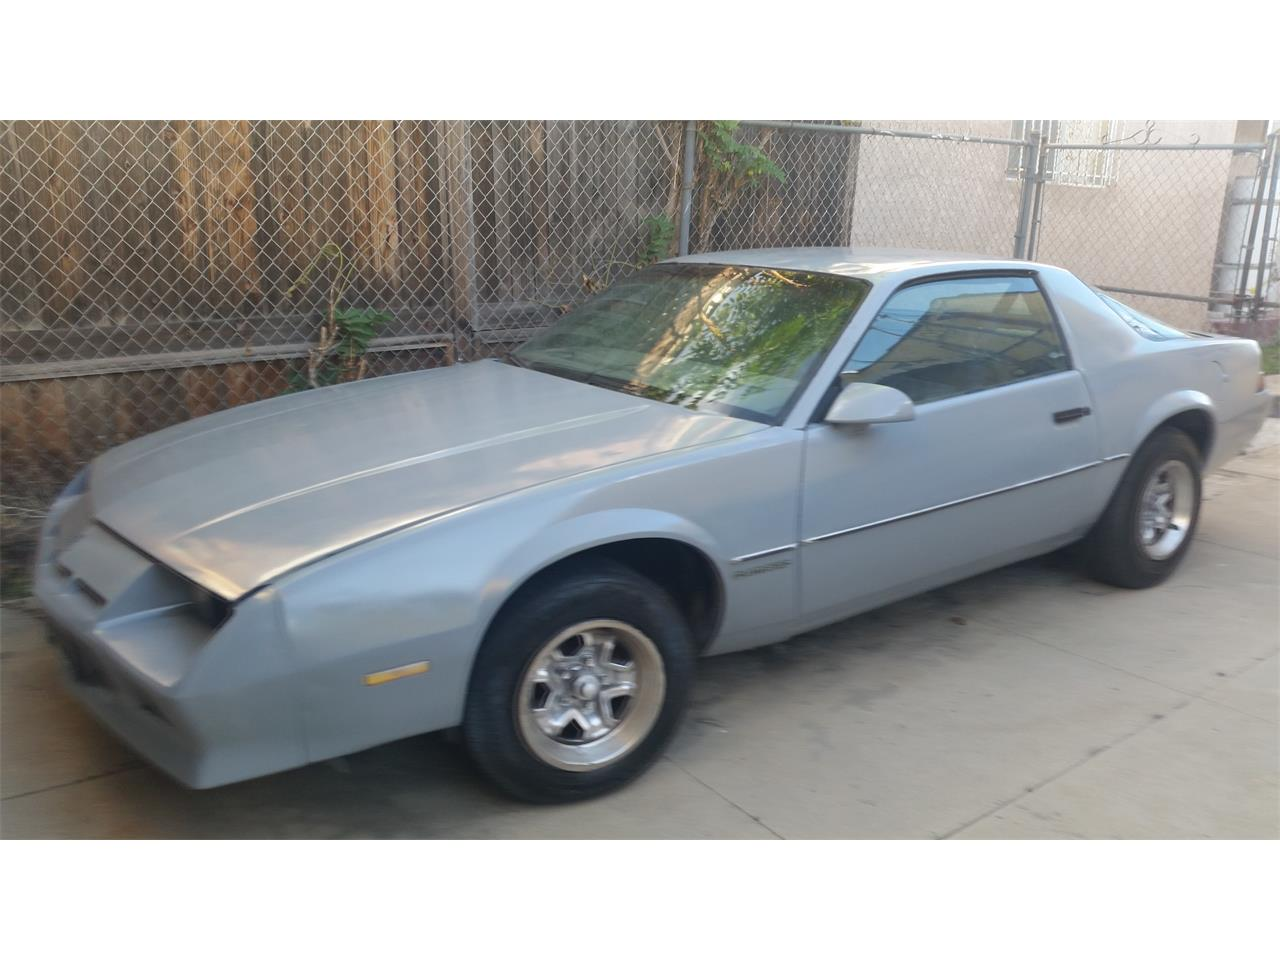 Large Picture of '82 Chevrolet Camaro located in California - $4,900.00 Offered by a Private Seller - GGFX